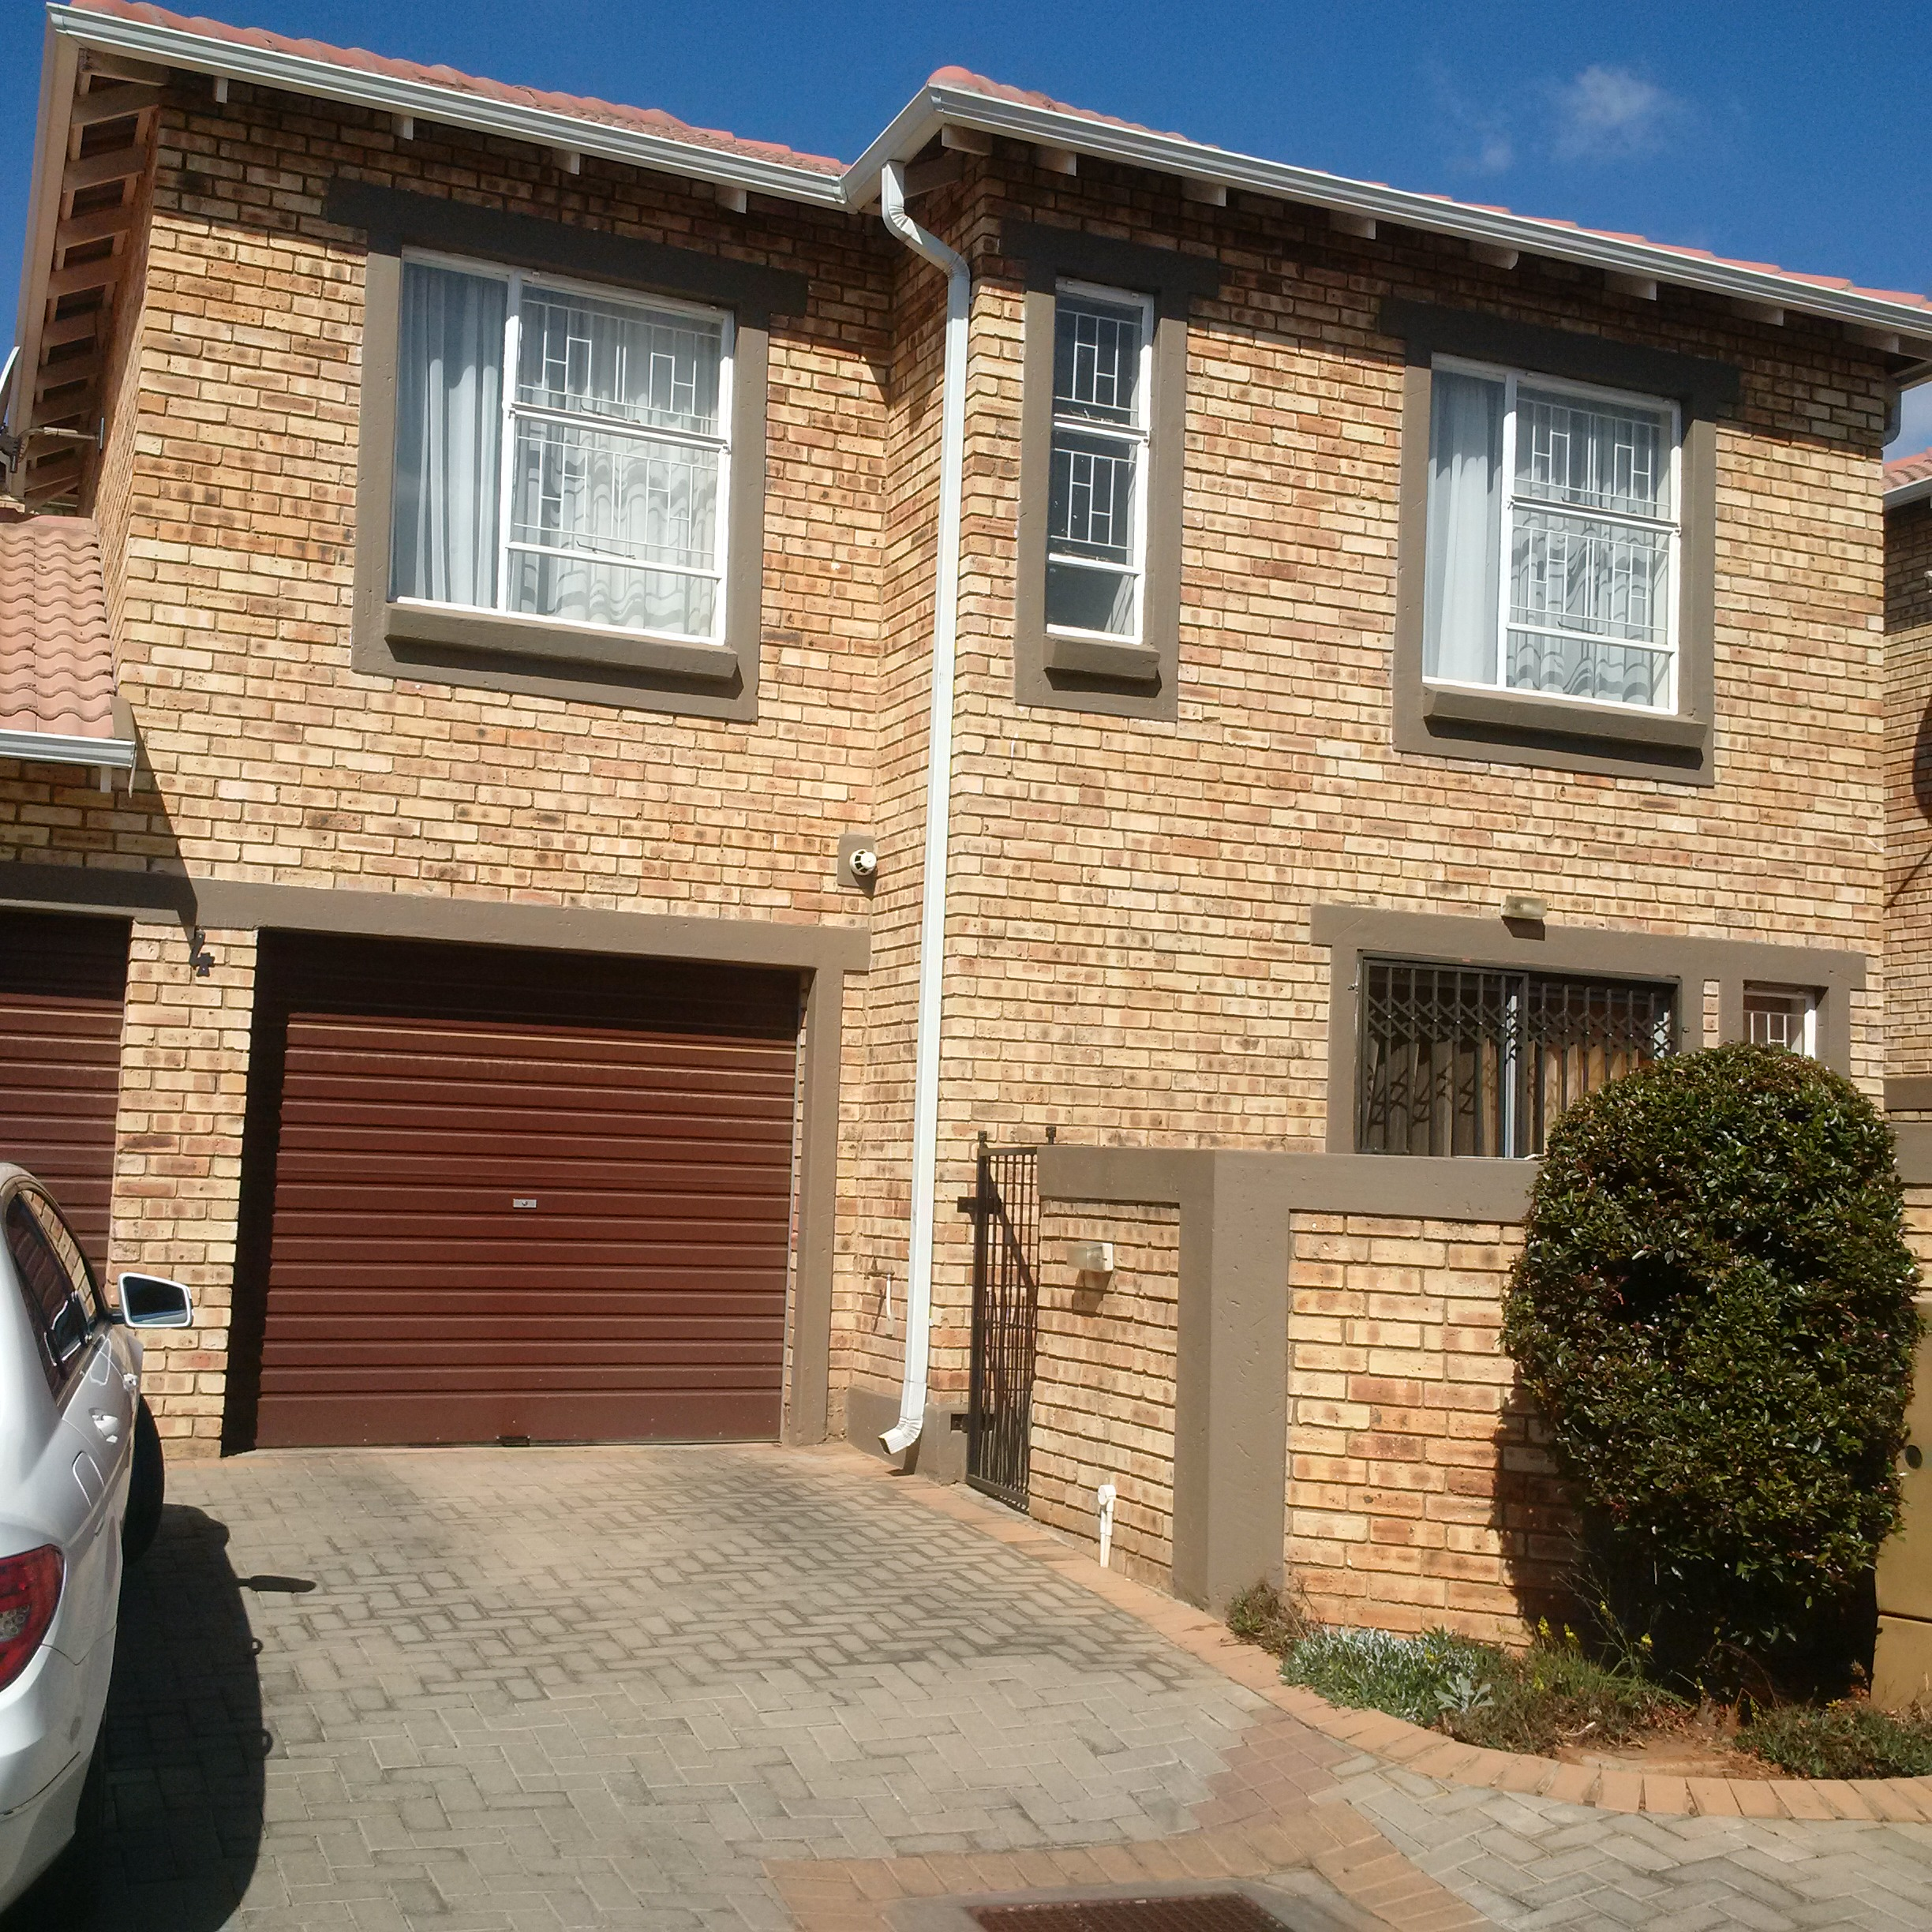 Rental Townhouses: 3 Bedroom Townhouse To Rent In Wilgeheuwel